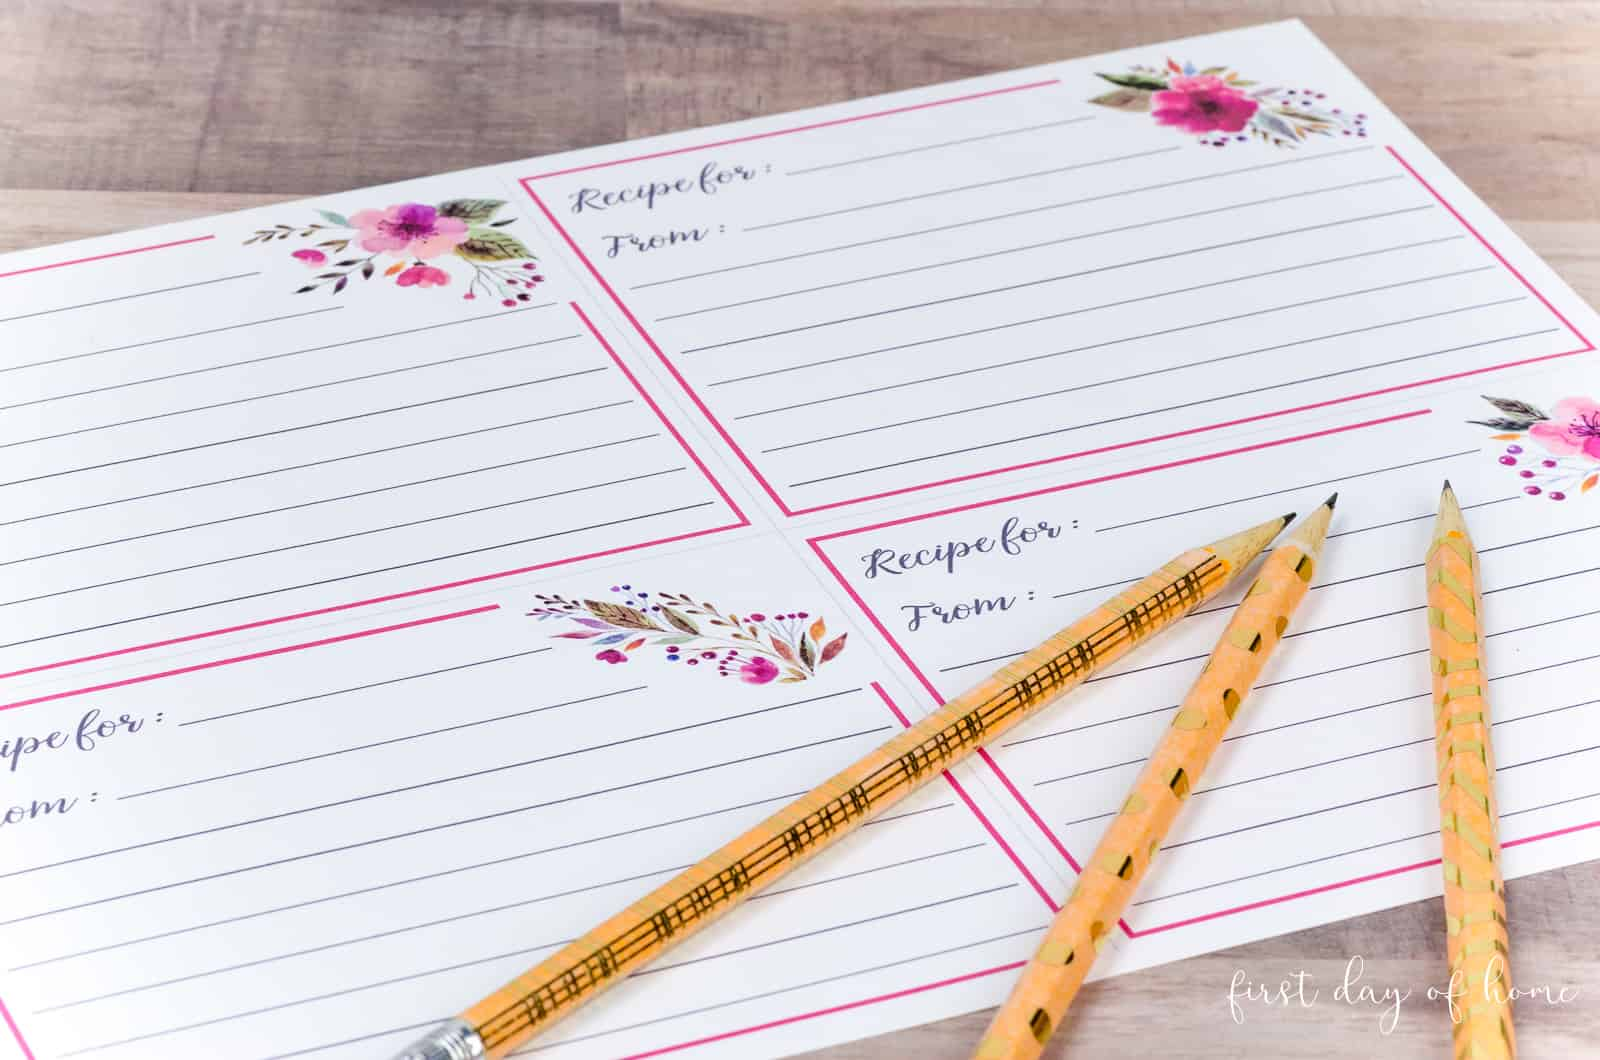 Printed sheet of recipe cards with gold washi tape pencils